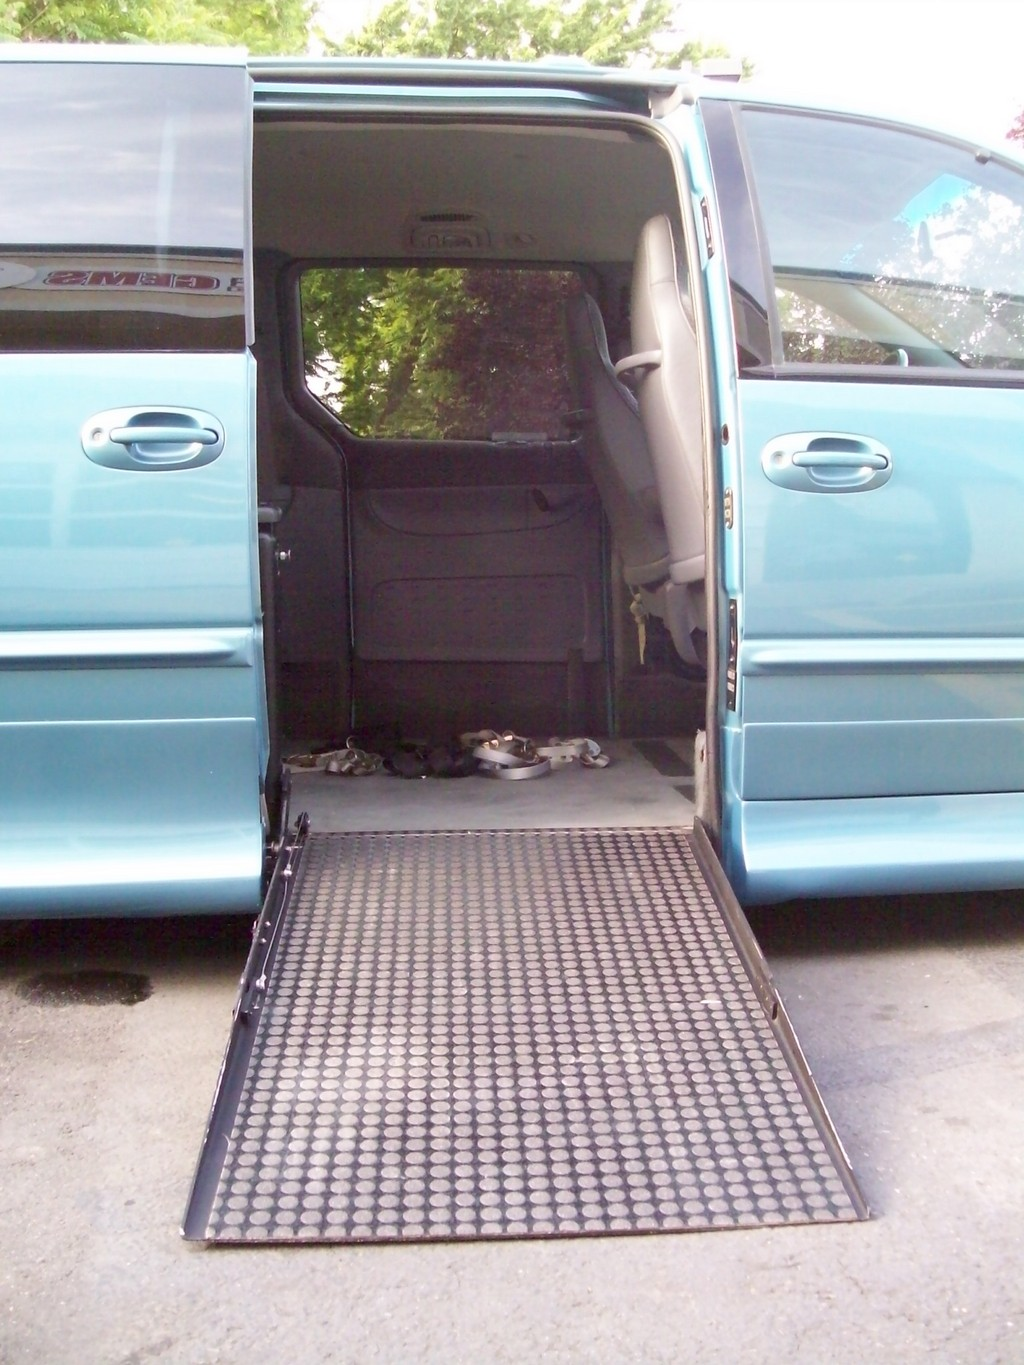 wheel chair mini van for sale, buy wheelchair accessible van, wheel chair straps for van, oklahoma city wheelchair vans